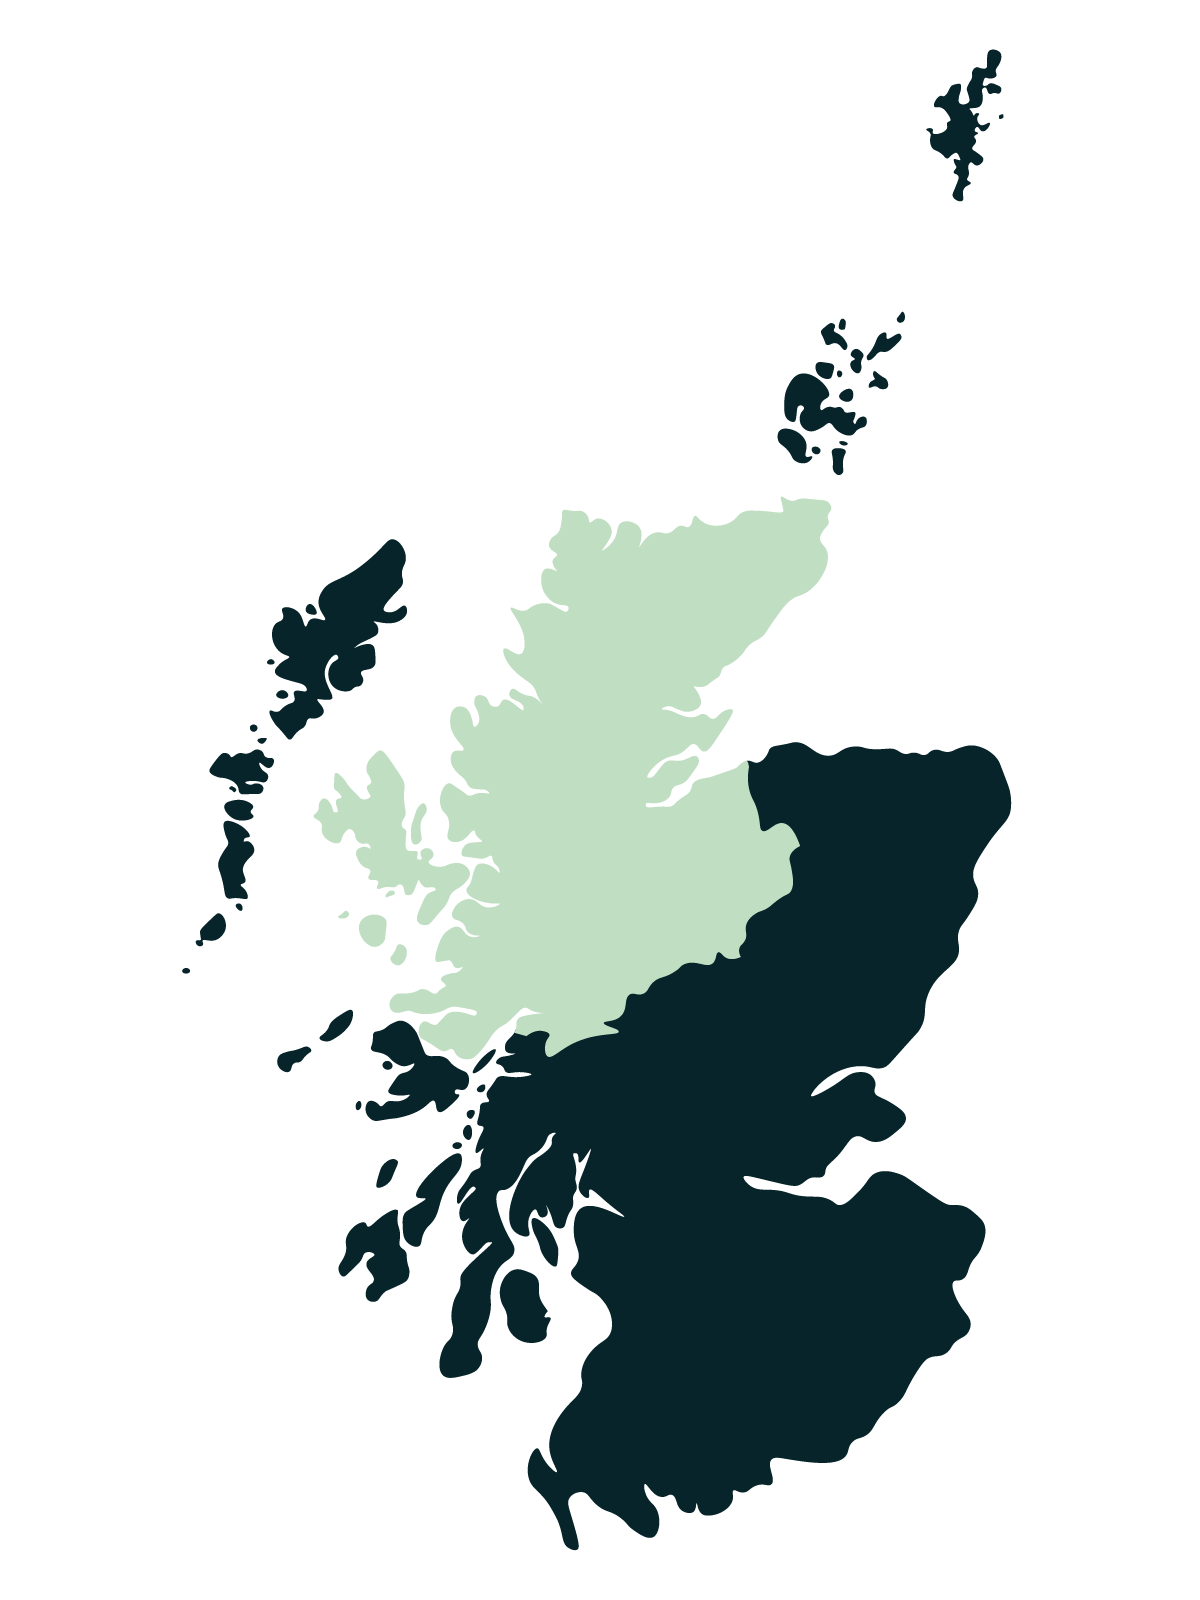 Scottish Highlands map